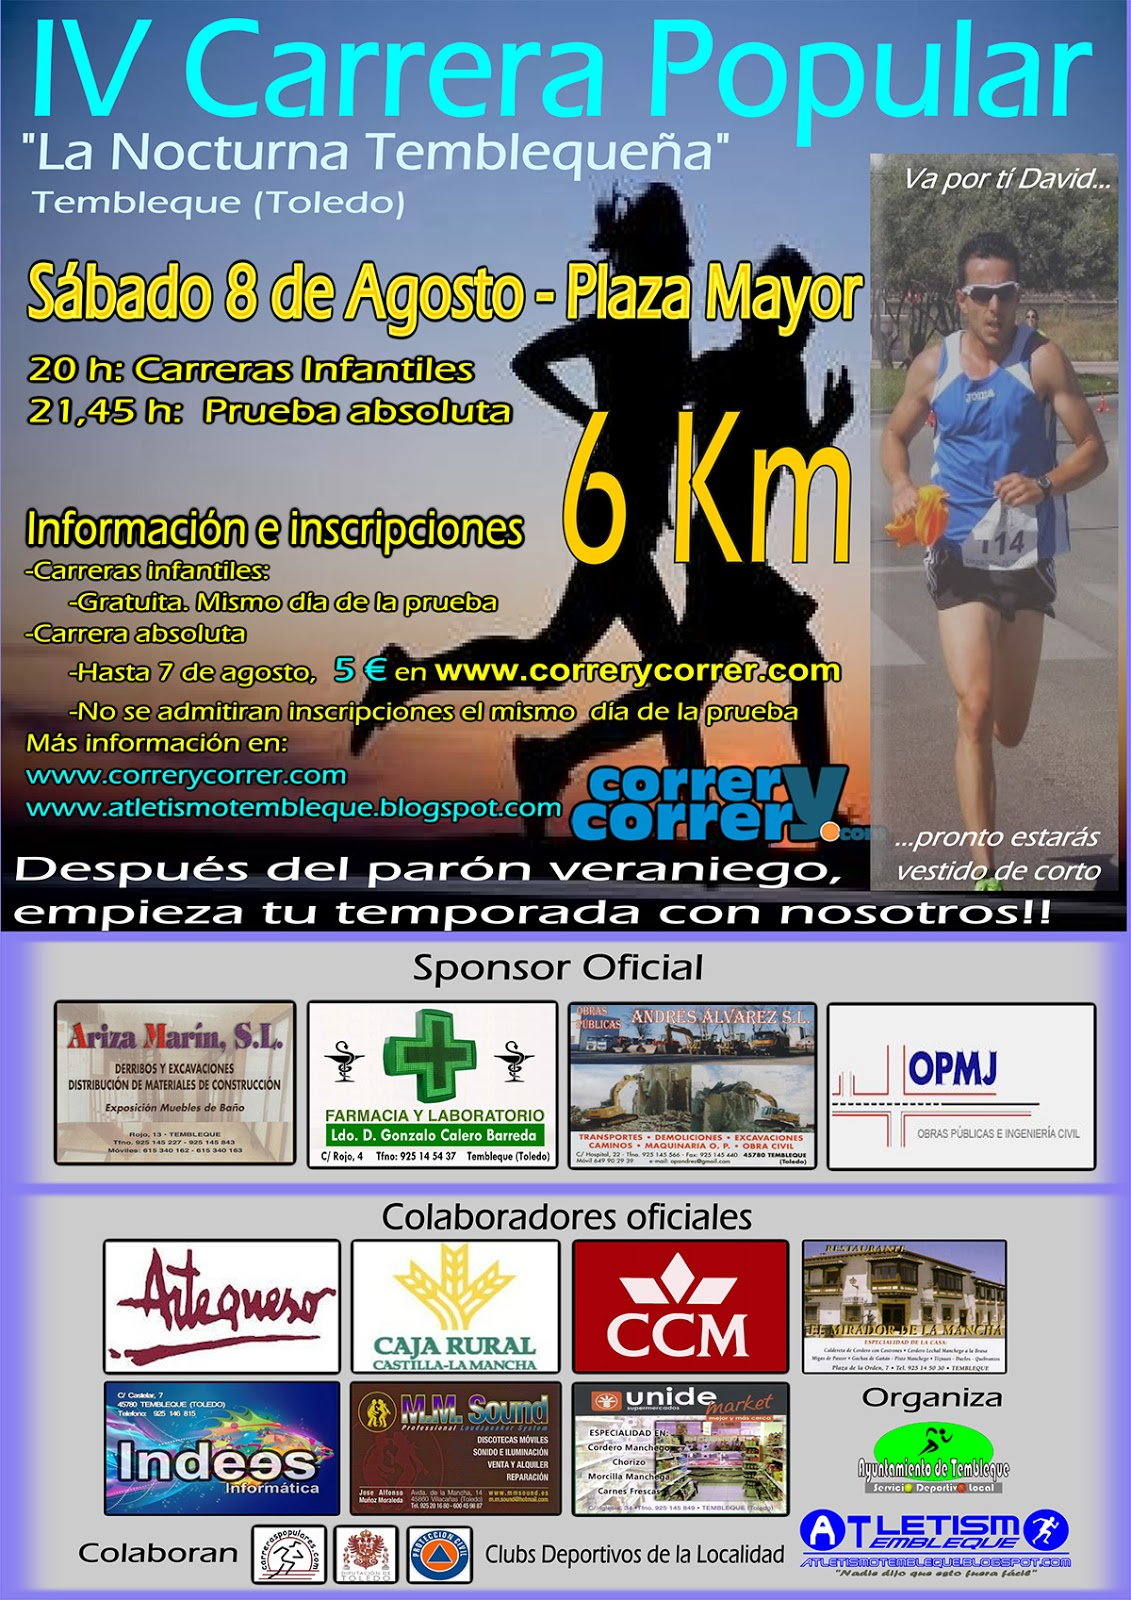 IV Carrera Popular Nocturna Temblequeña